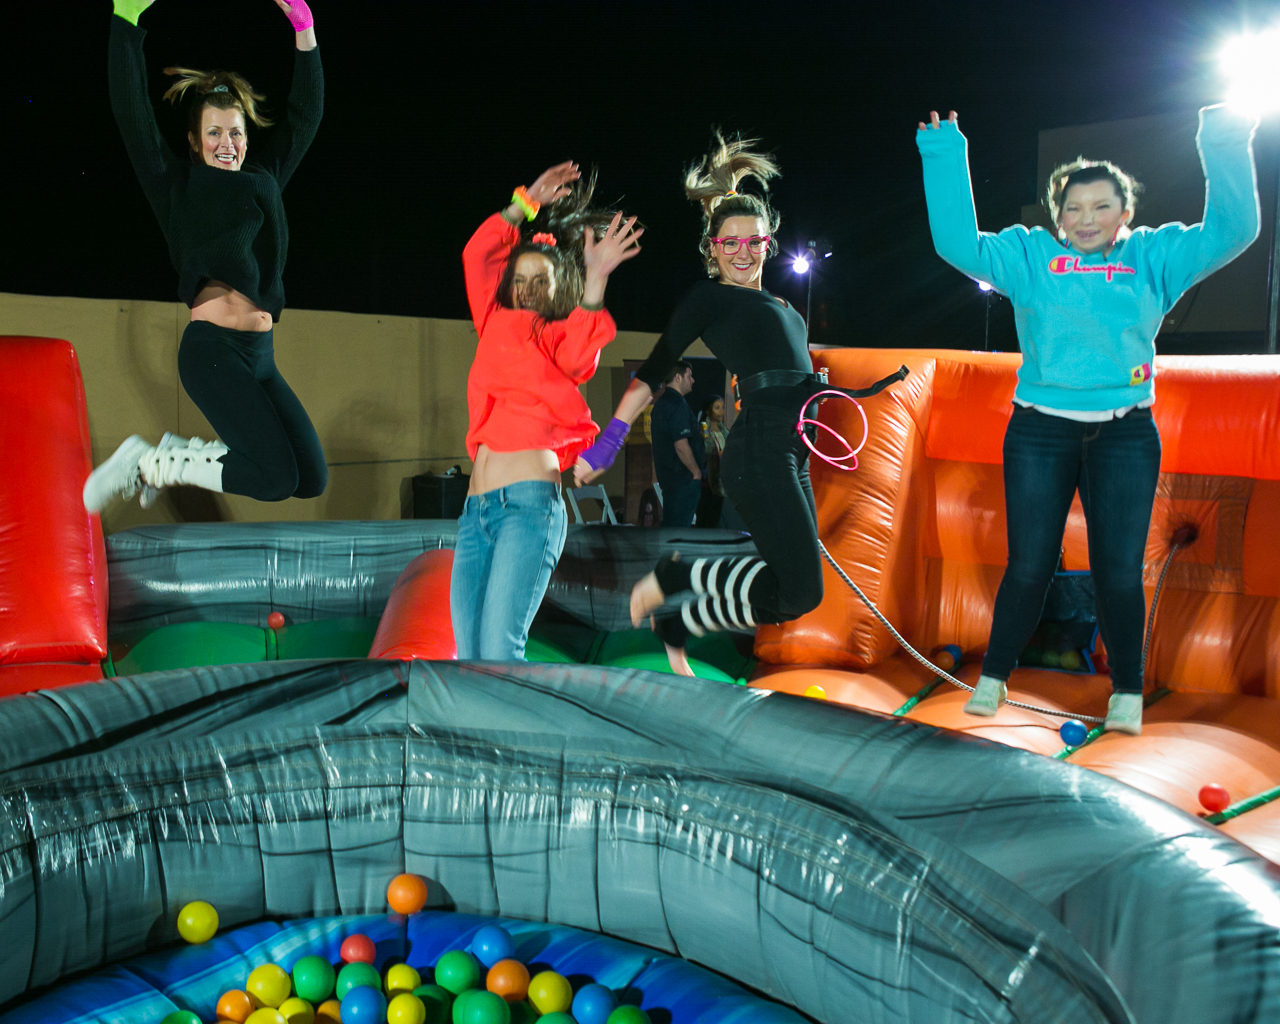 Kathleen climbed into the jumping pit with event attendees to capture this image. As a corporate event photographer, Kathleen goes to great lengths to document the full story of the event.